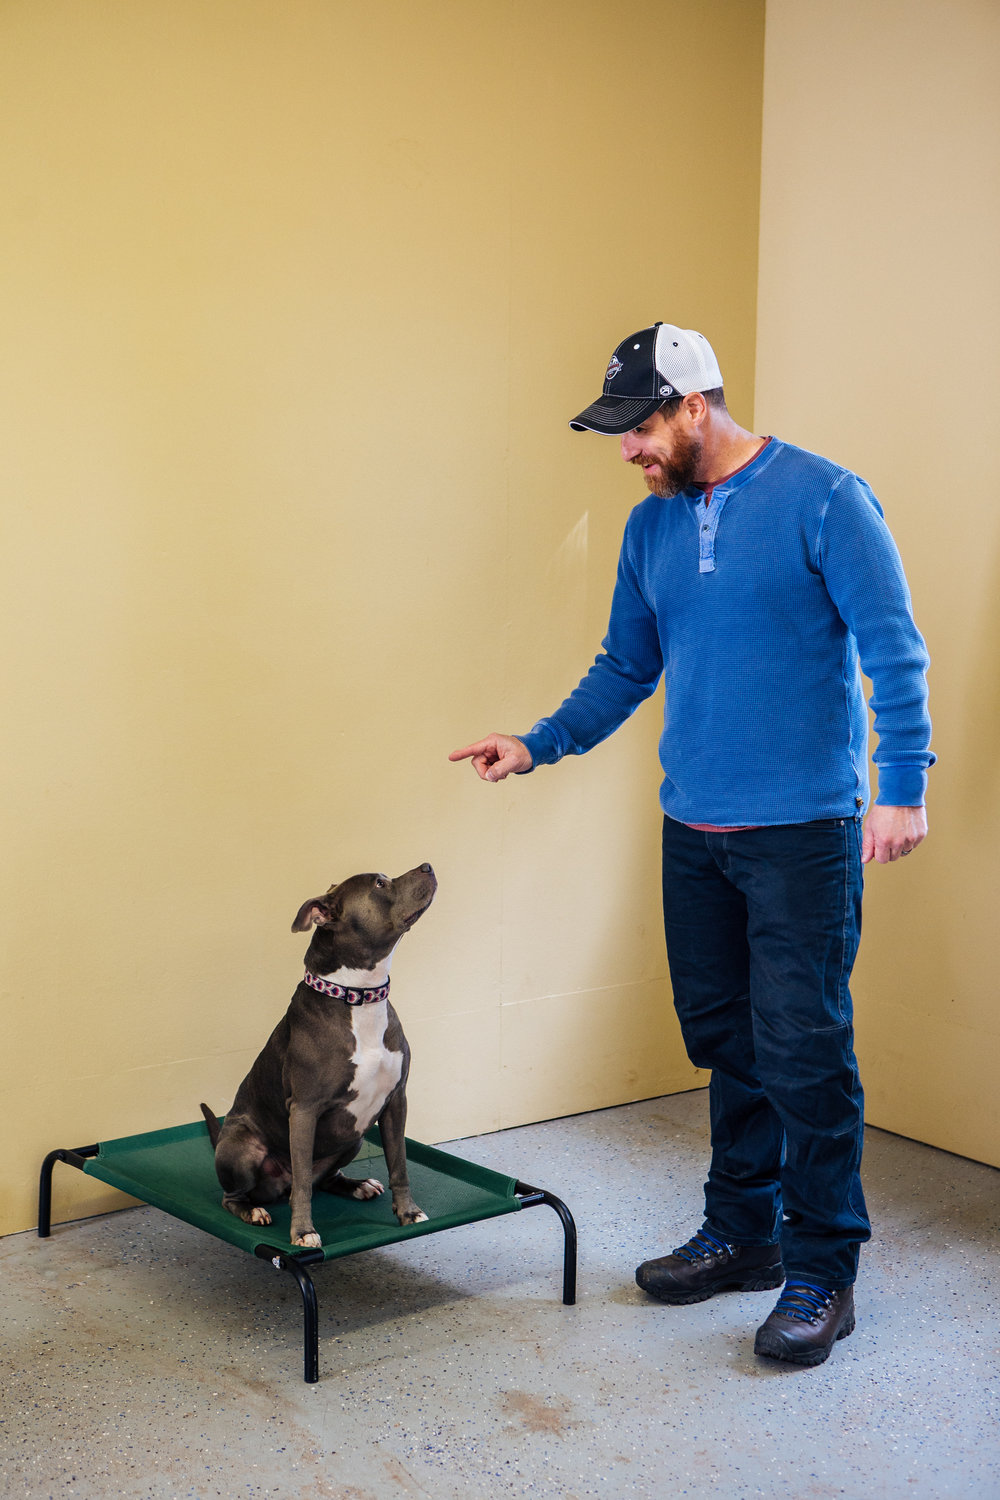 Start your puppy off right - Our puppy obedience class begins the first weekend of November. This class is designed to teach your puppy the basics of obedience such as